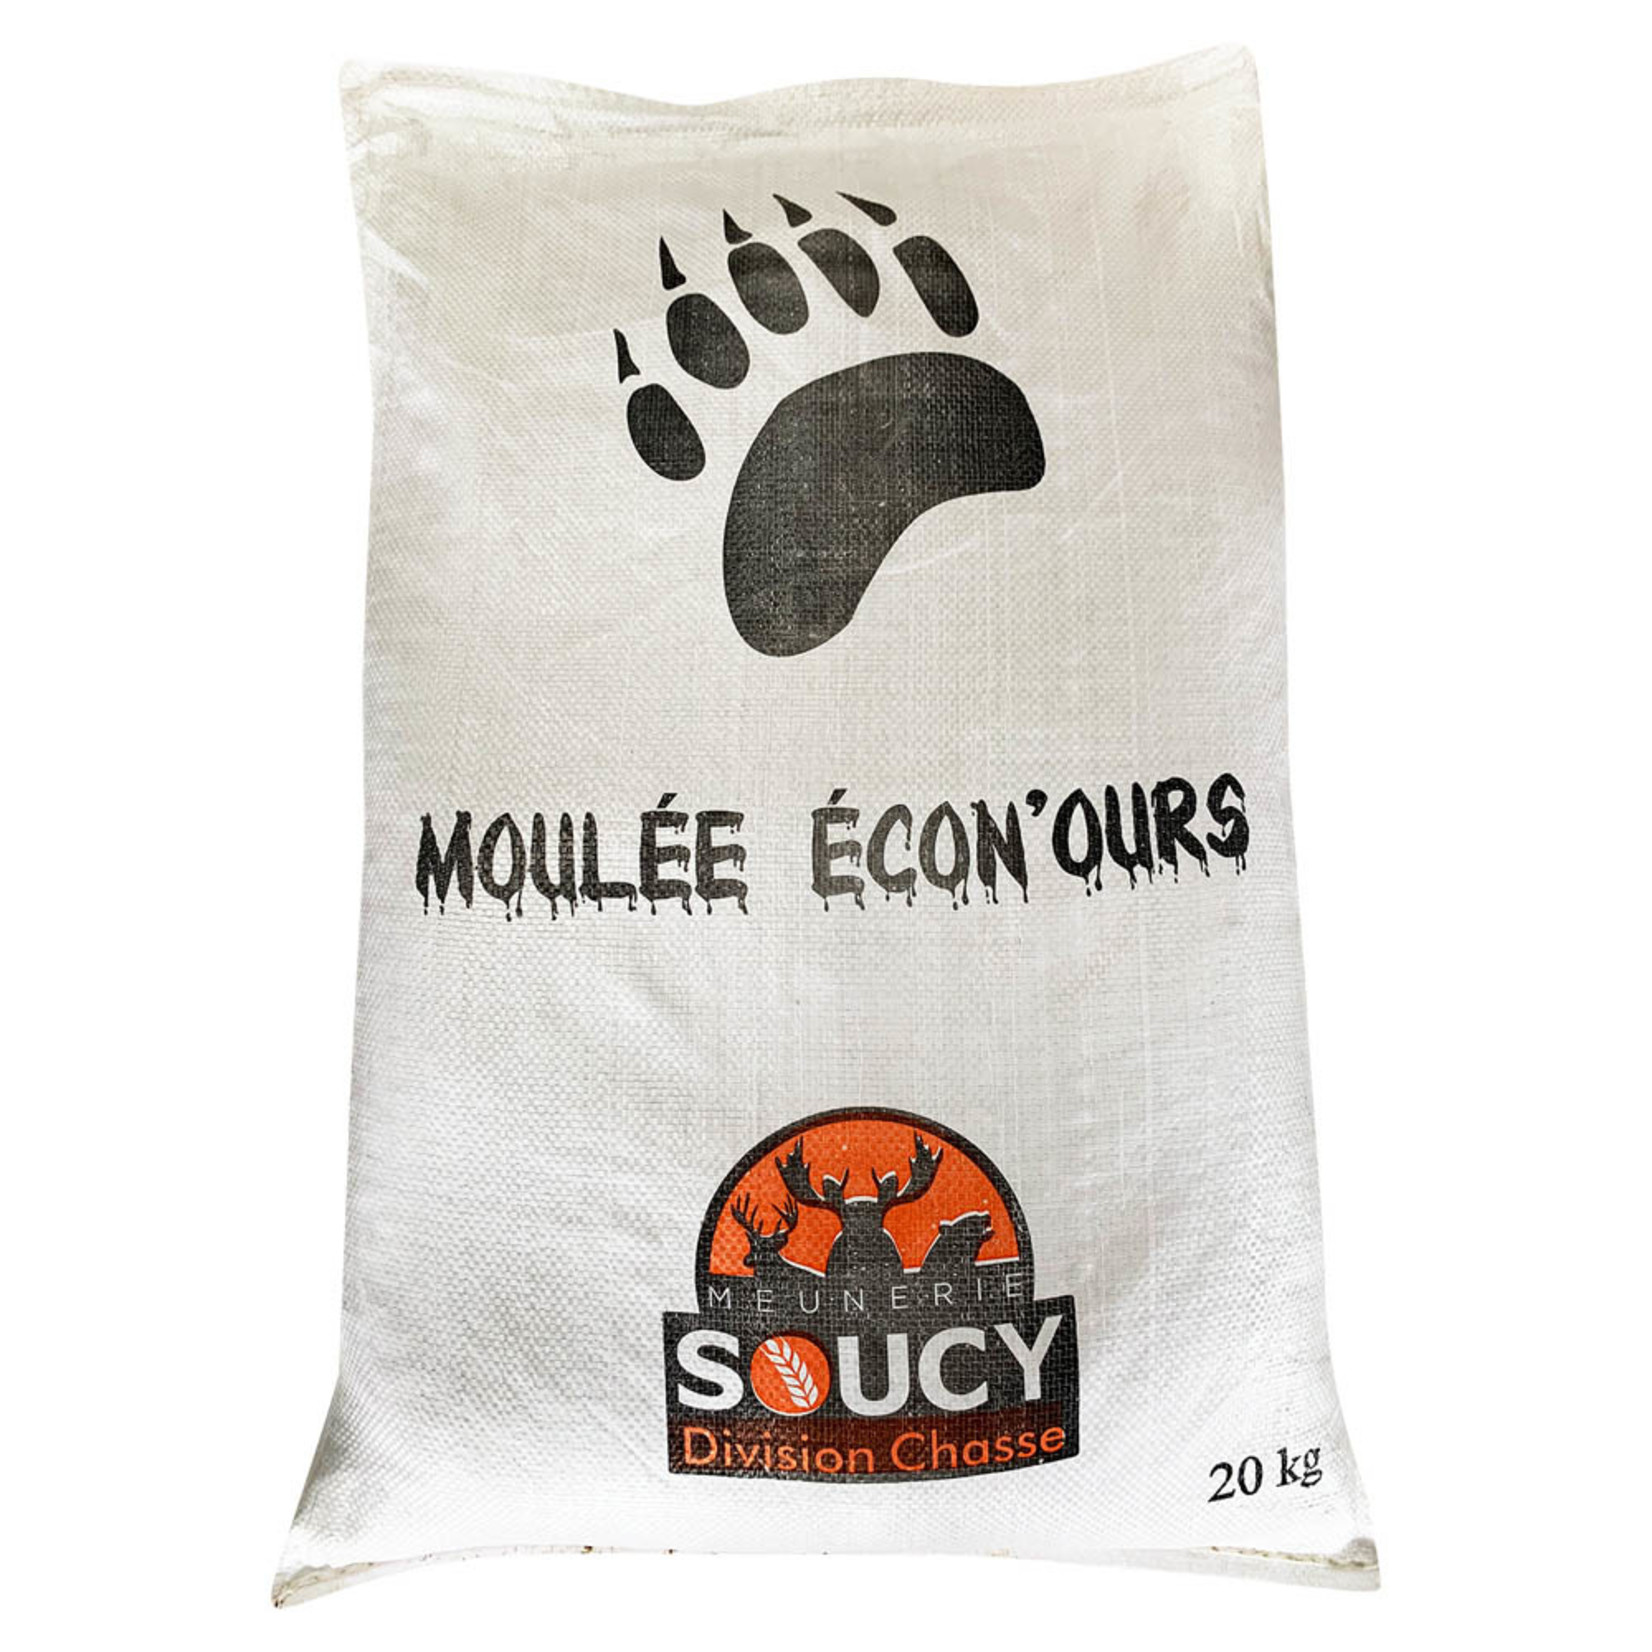 Meunerie Soucy Econ'Ours Feed with Molasse for Bears